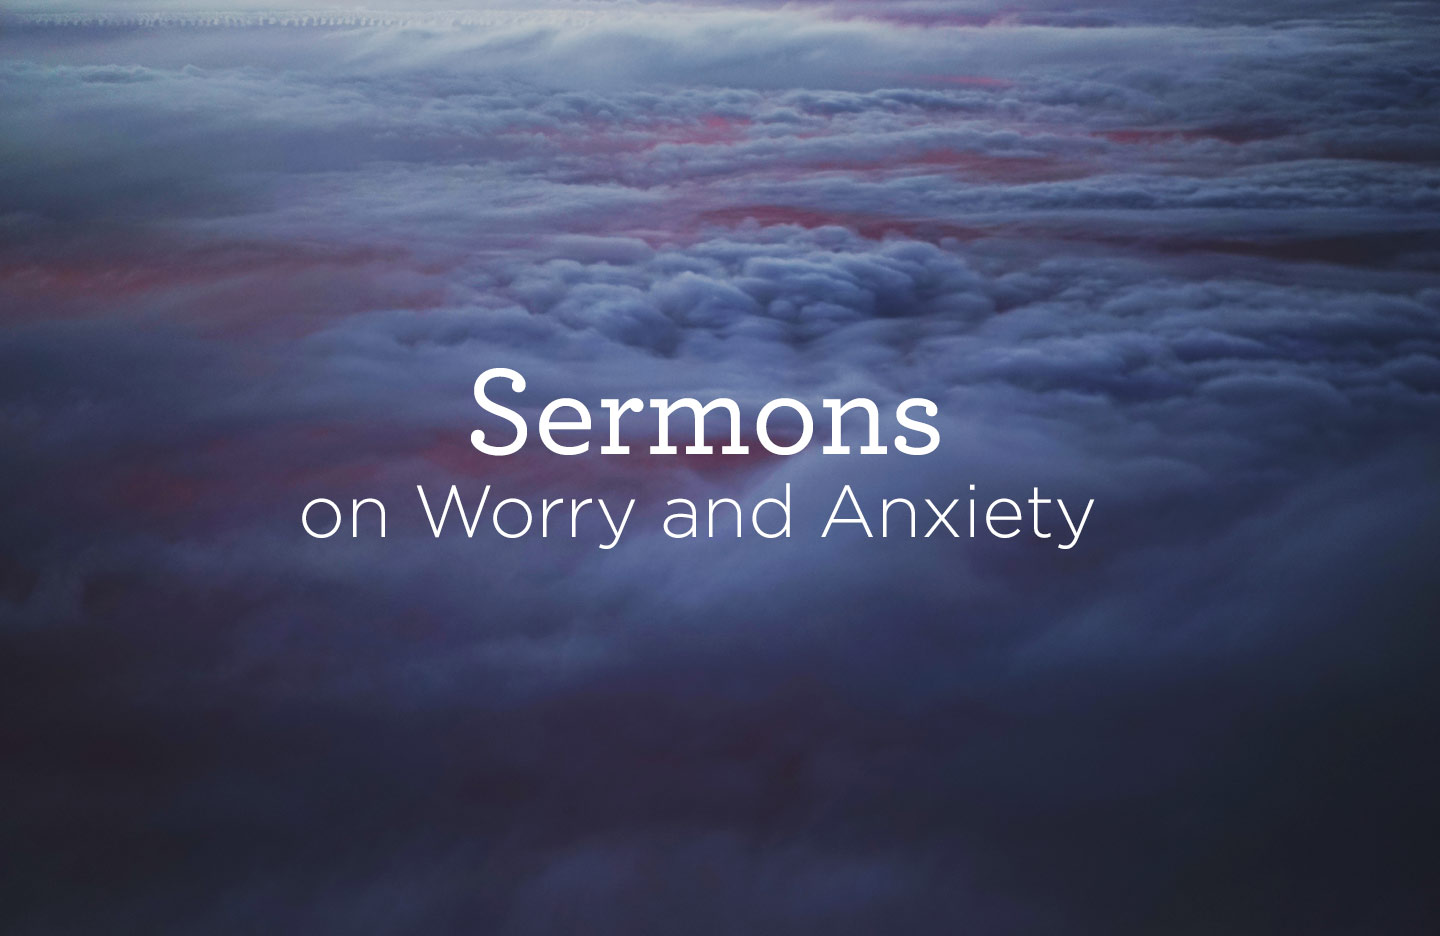 thumbnail image for Sermons on Worry and Anxiety